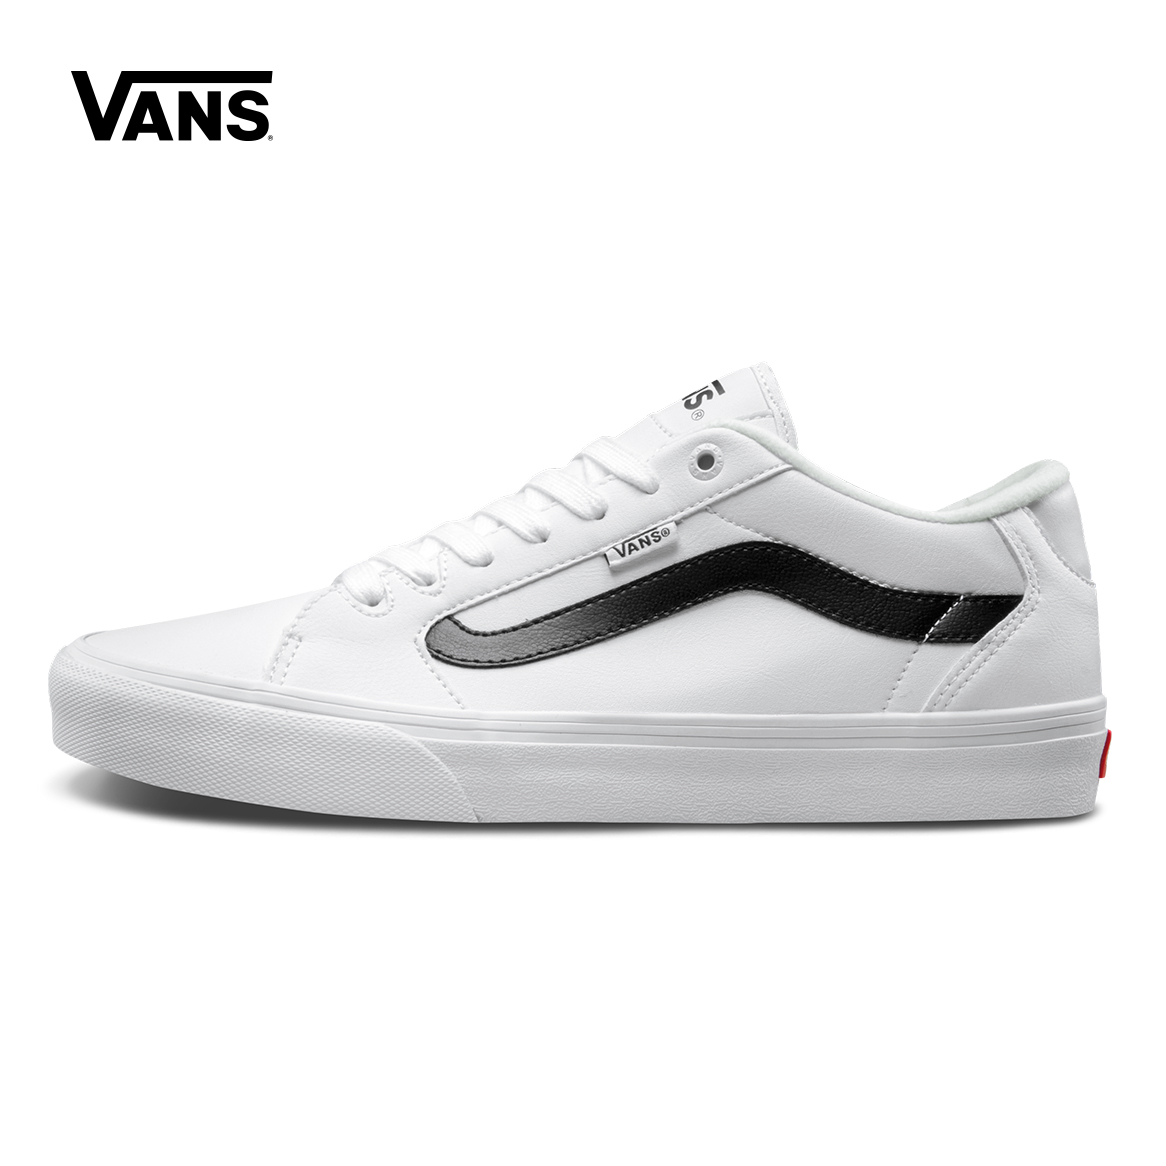 White Black Color Vans Shoes Men's Active Faulkner Low-top Skateboarding Shoes Sport Leather Stitching Vans Sneakers VN000SJVPX9 цена 2017